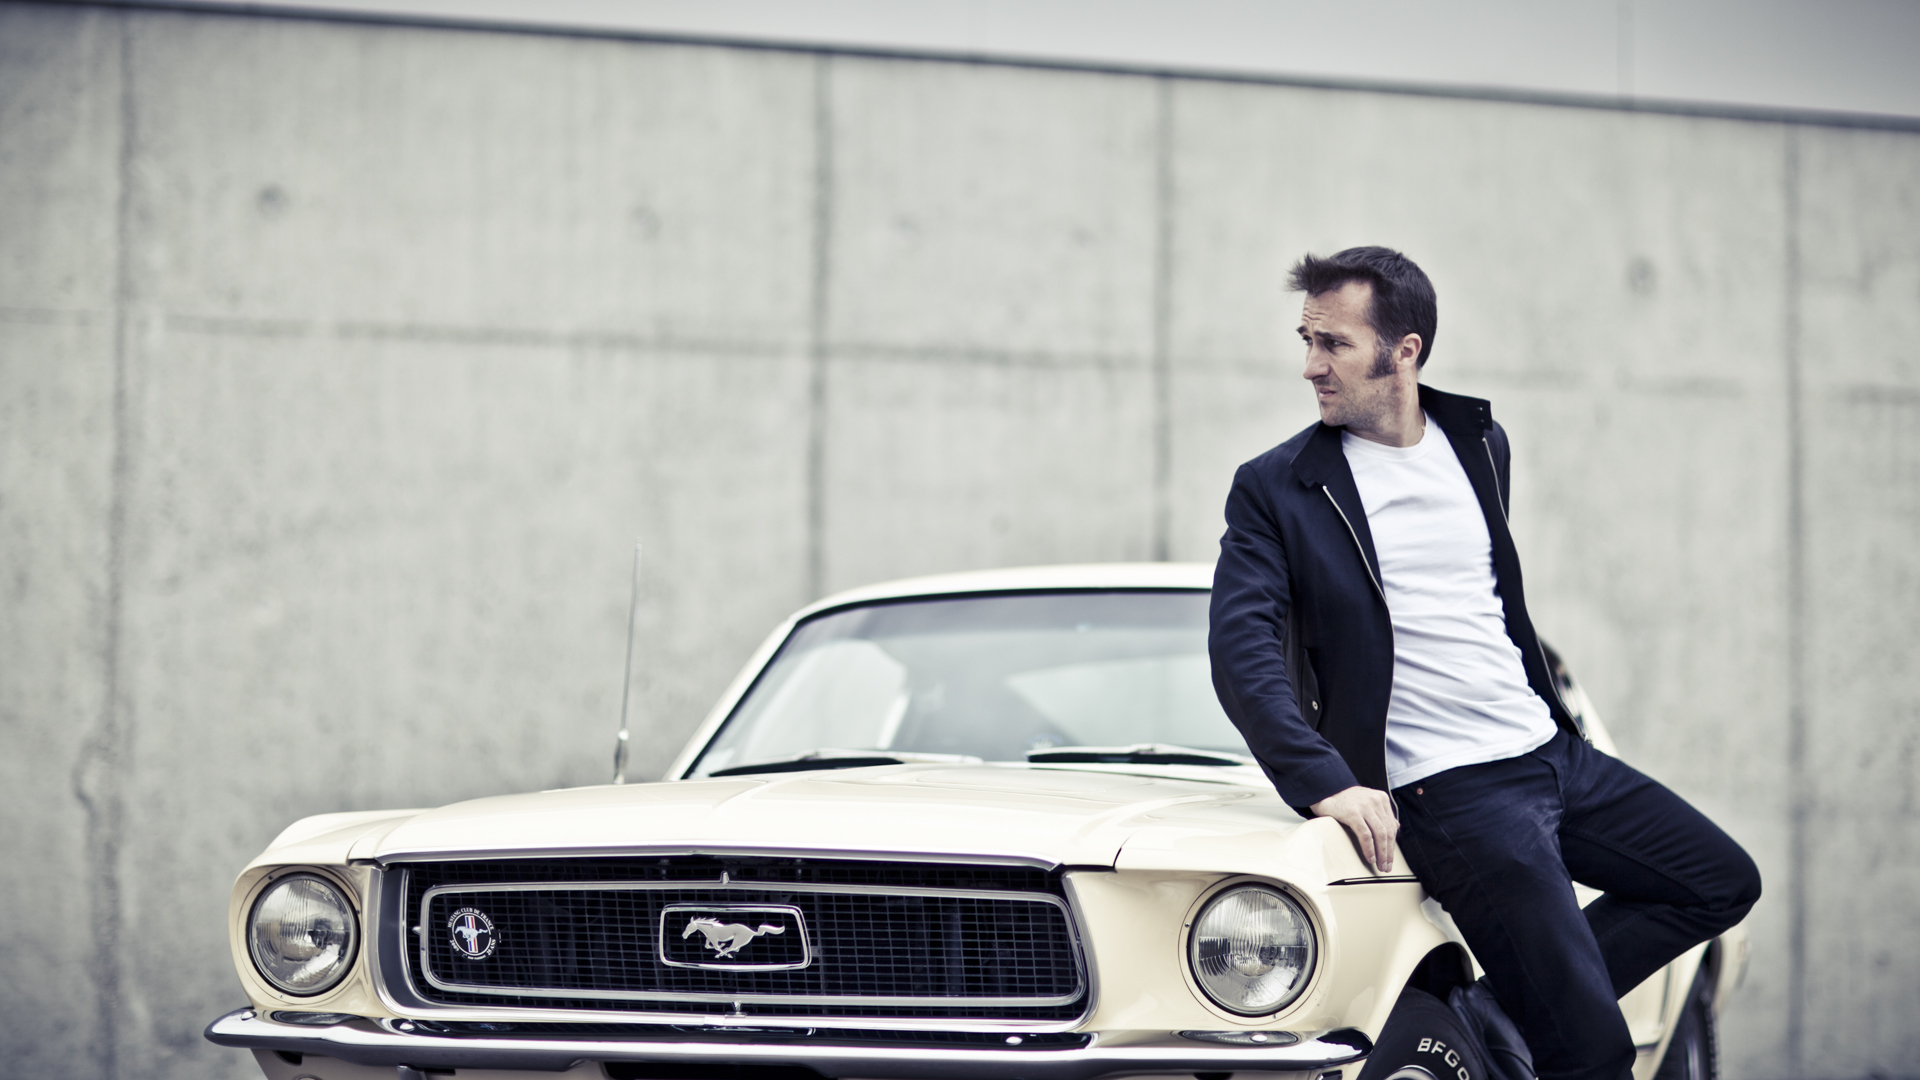 Pascal & his Ford Mustang / Laurent Nivalle (6)